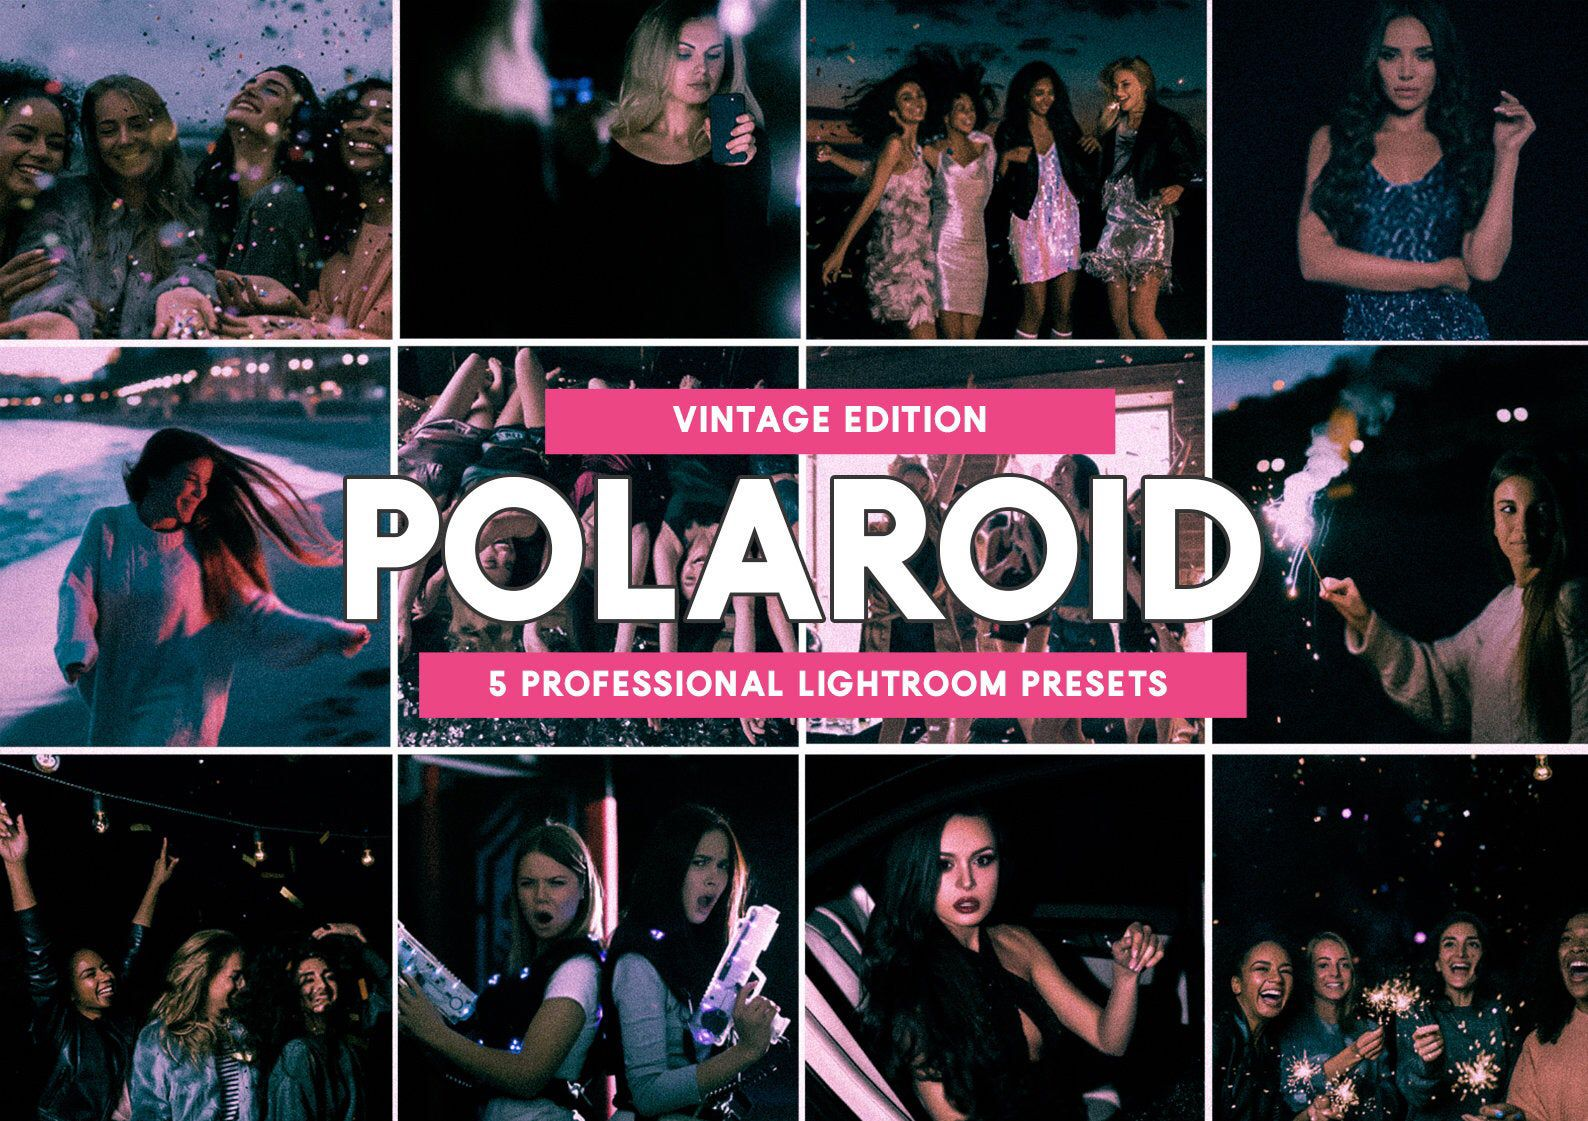 Excited To Share The Latest Addition To My Etsy Shop 5 Polaroid Lightroom Presets Lightroom Presets Lightroom Presets Tutorial Professional Lightroom Presets